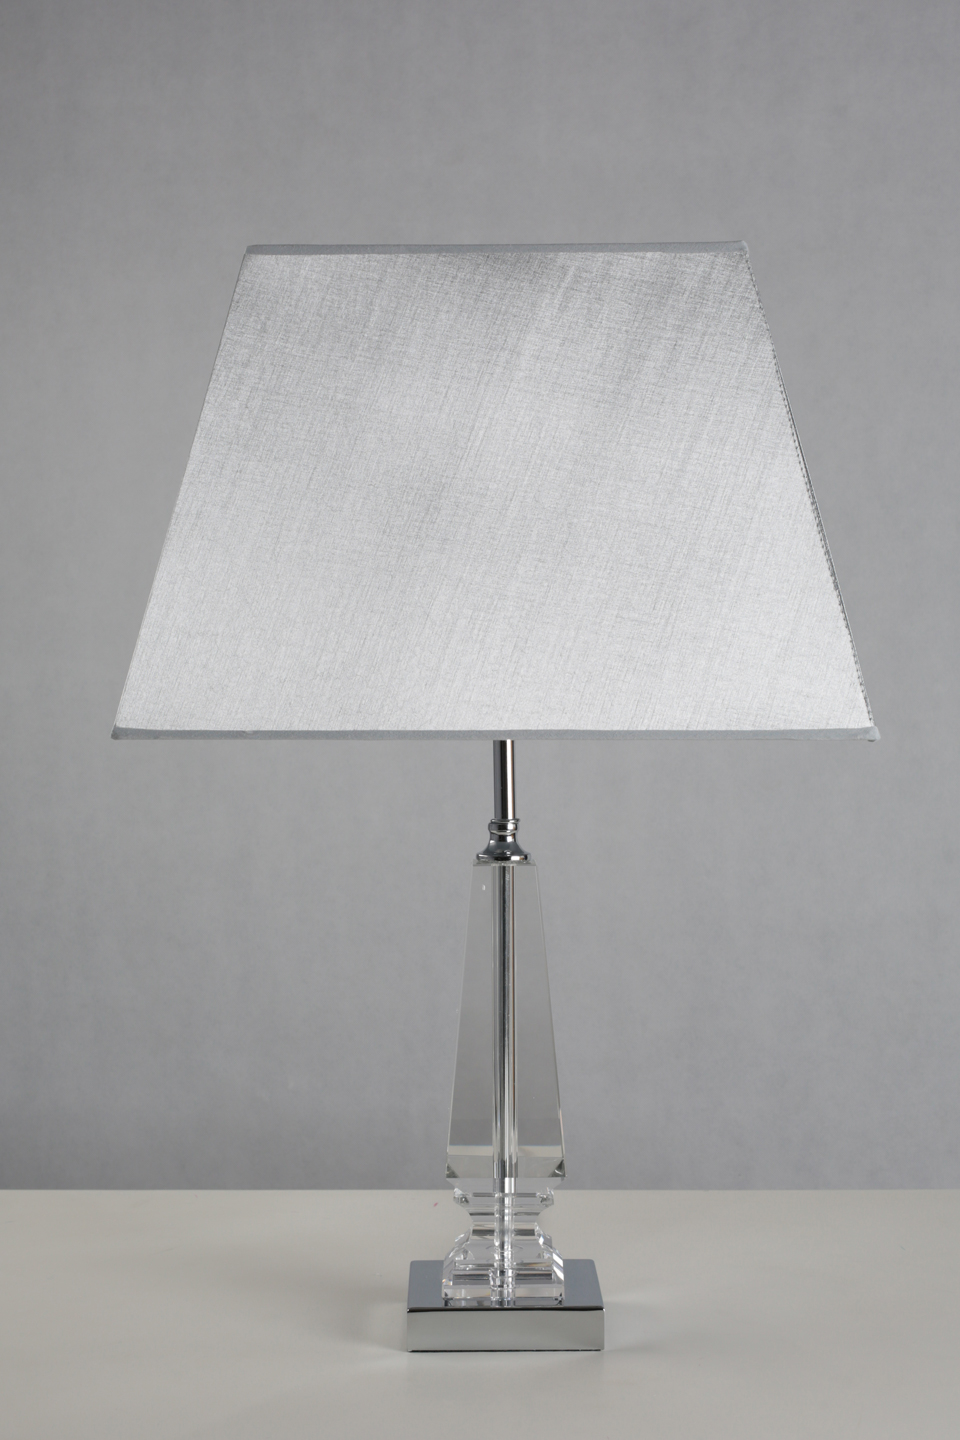 White Table Lamp Pyramid Square And Base Shade Metal jRL35A4